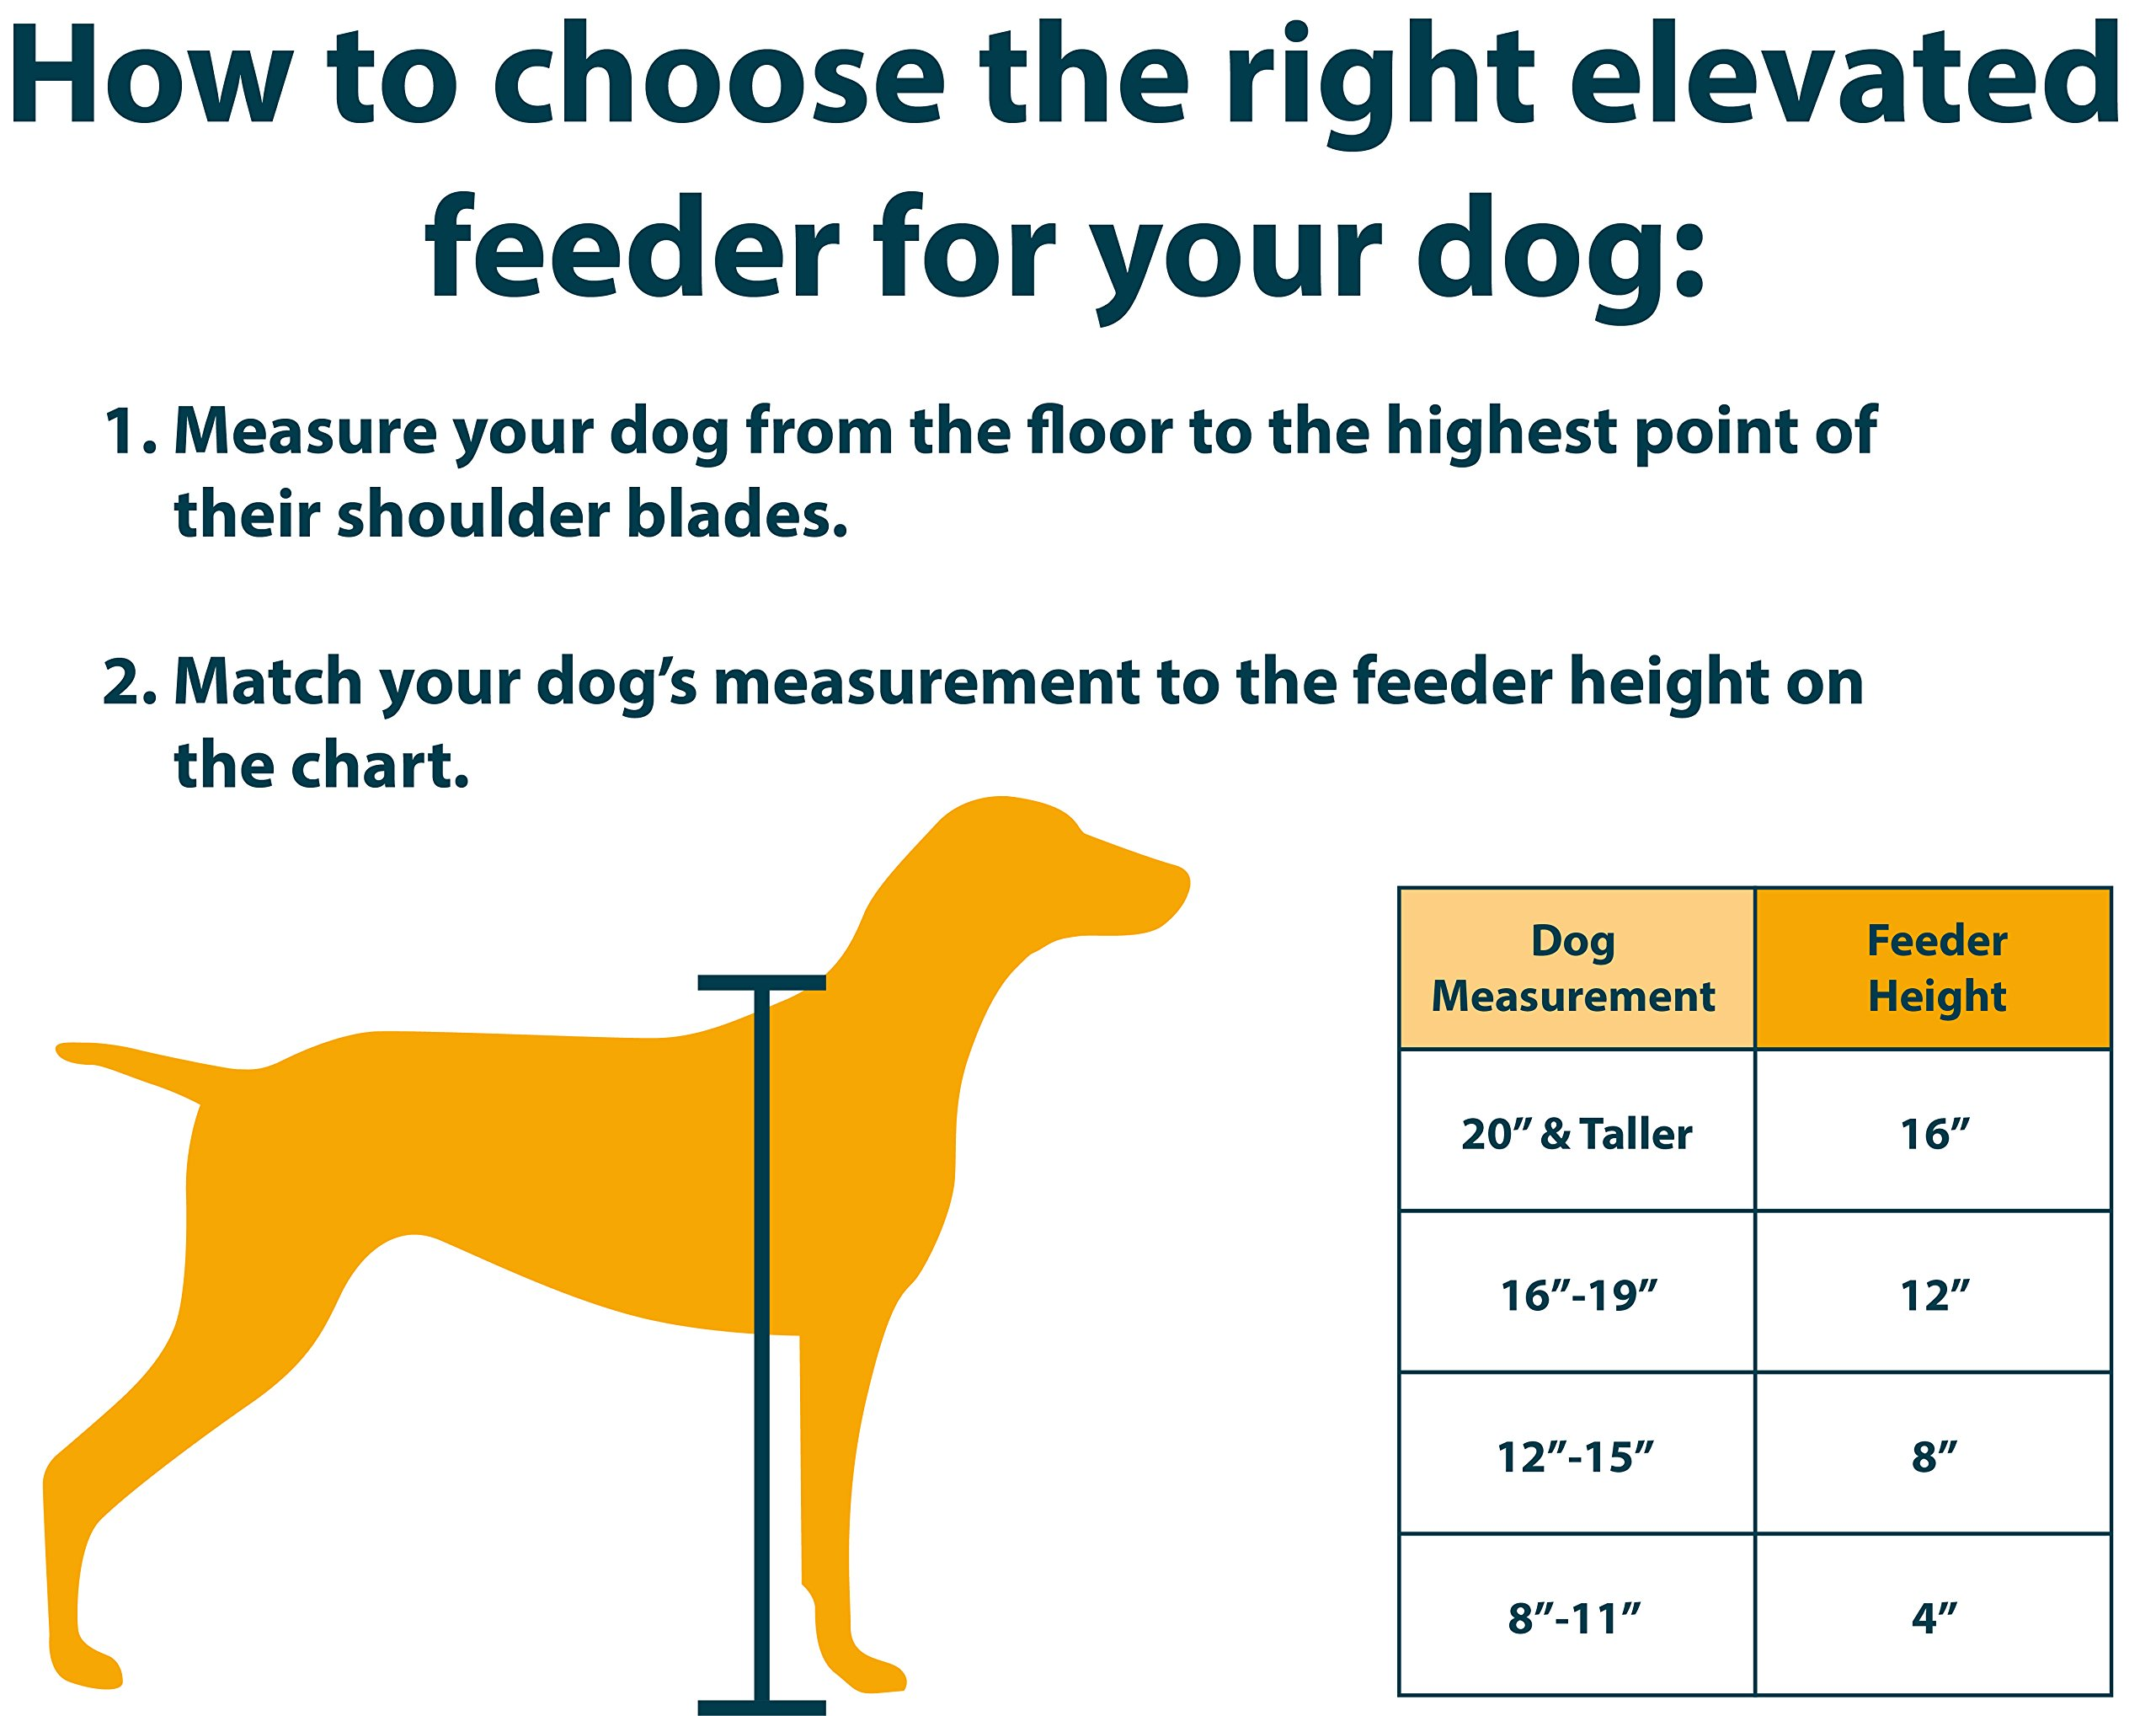 OurPets Signature Series Elevated Dog Feeder 4''